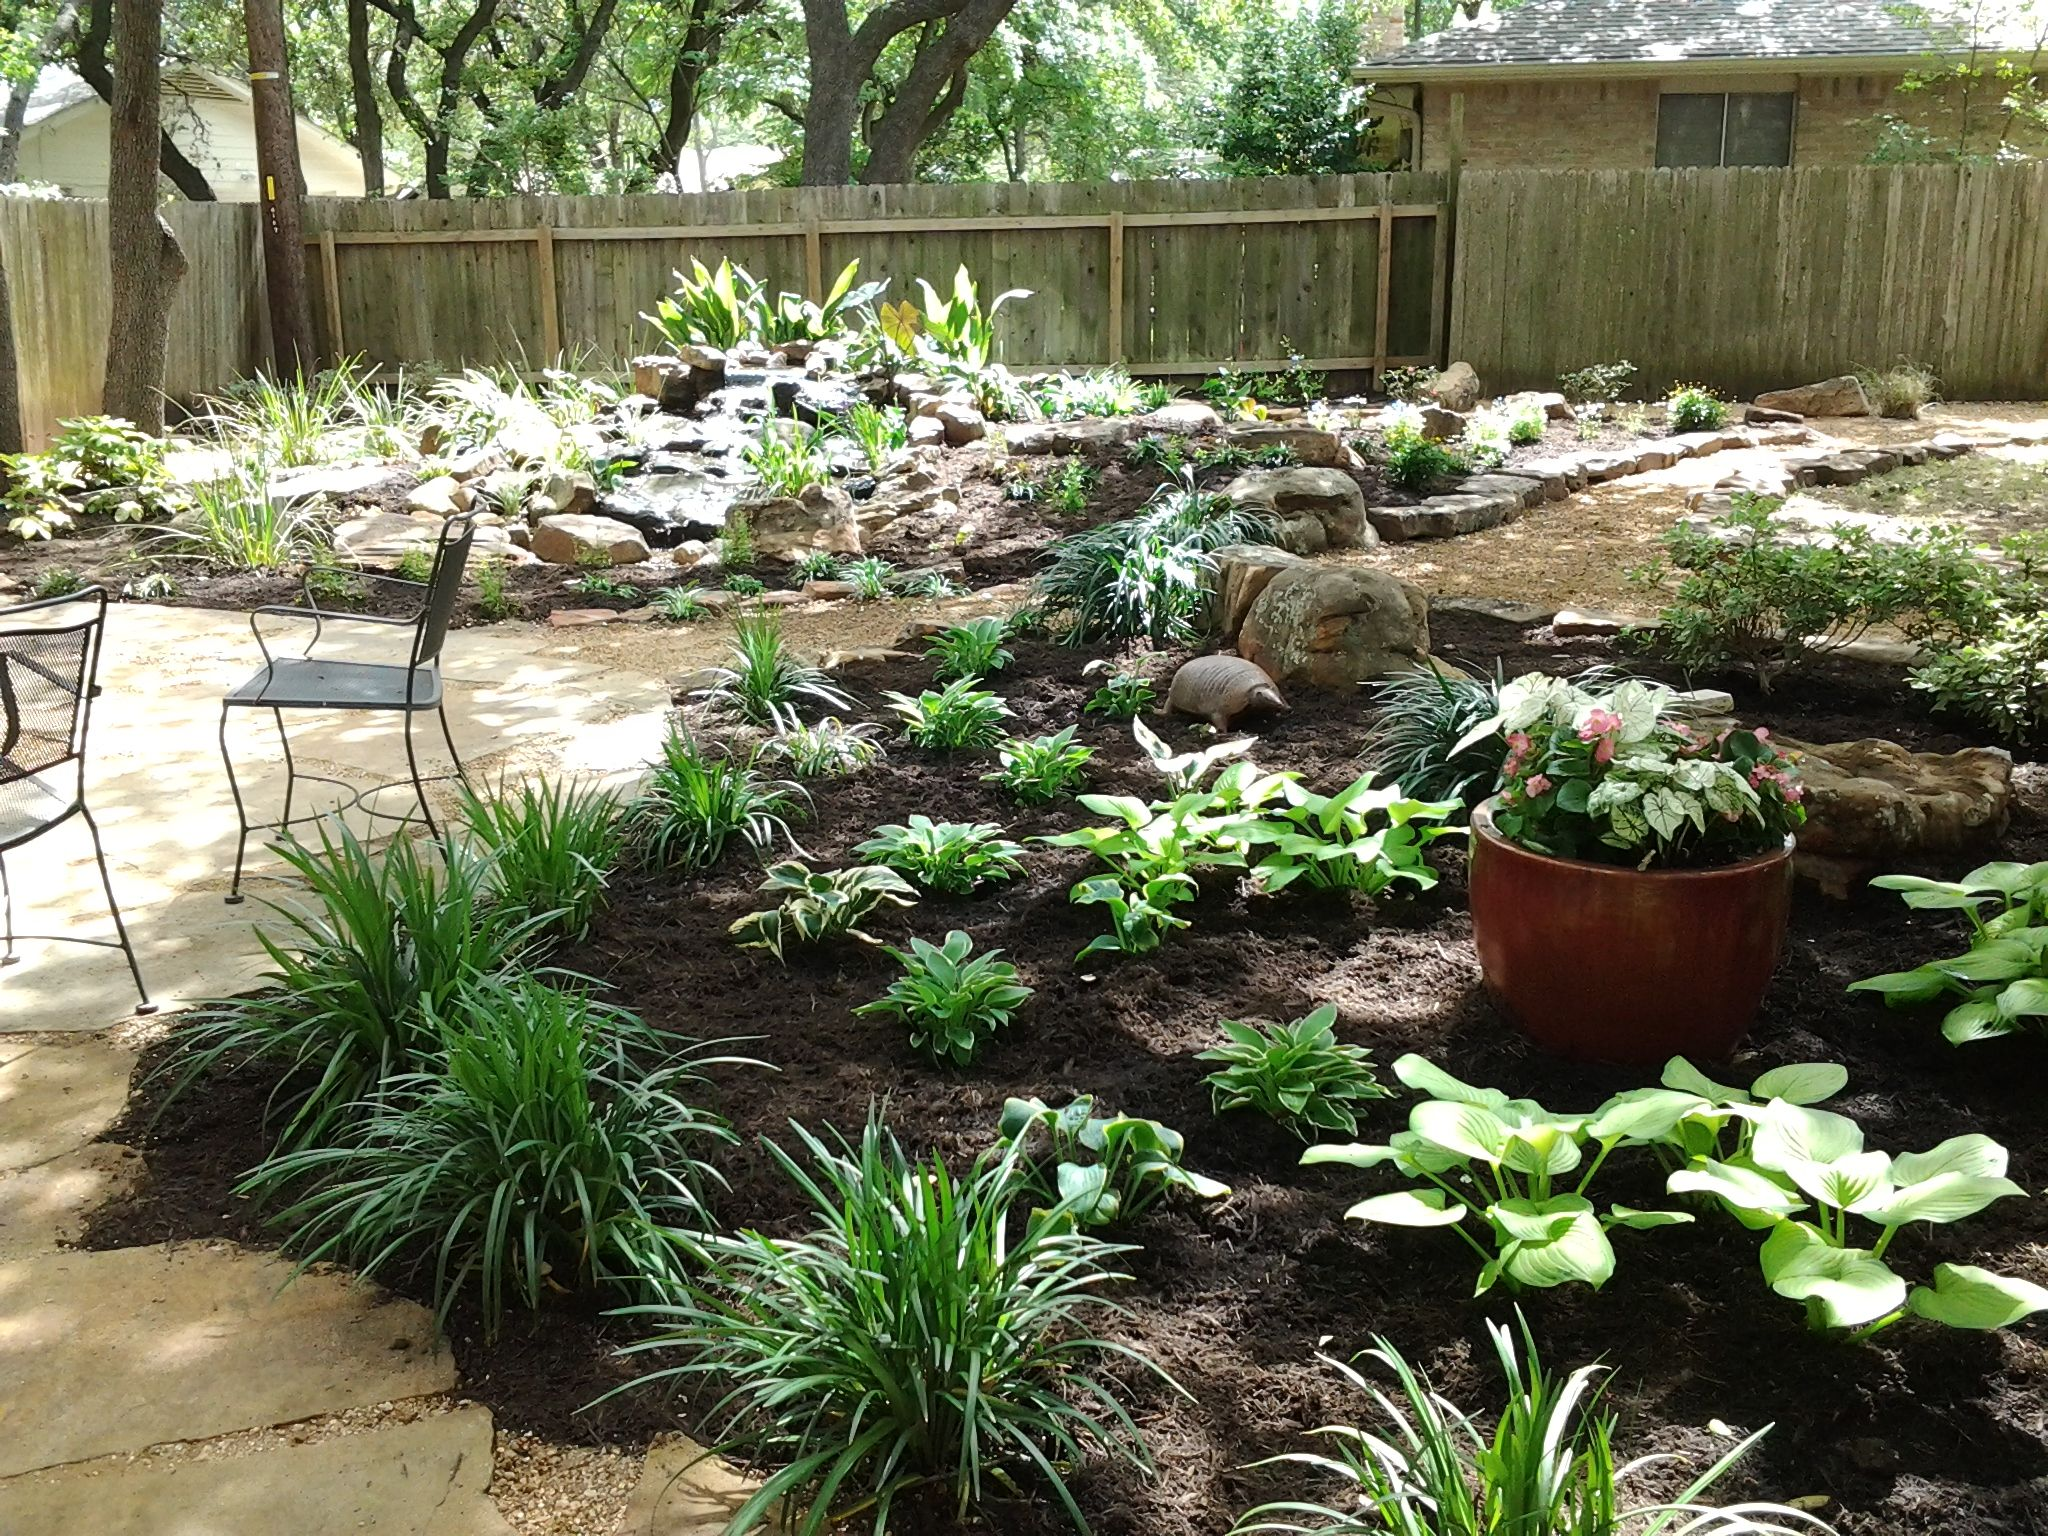 Shade Garden With A Water Feature. Yes Those Are Hostas In Austin Set In And